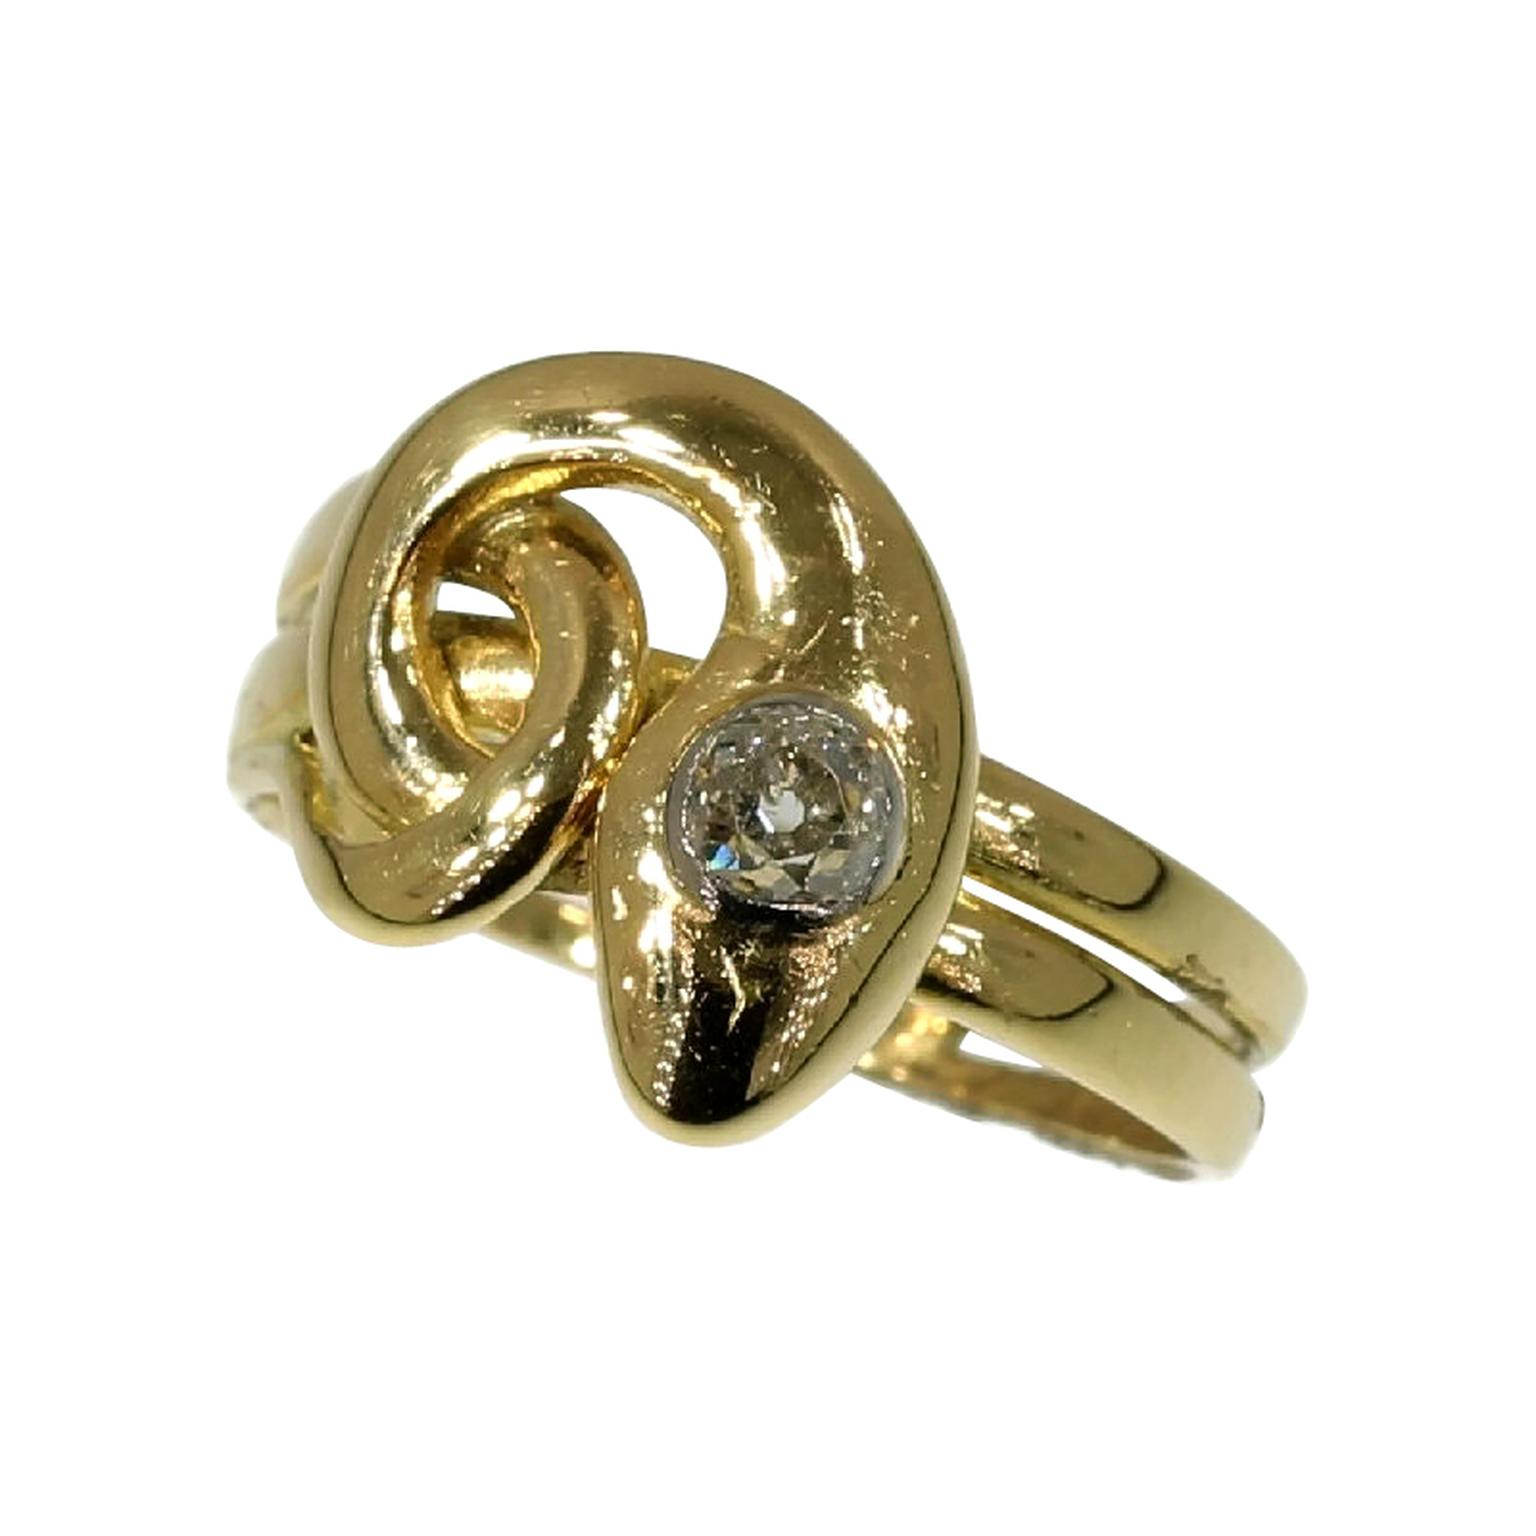 Adin Antique Jewellery Victorian snake ring